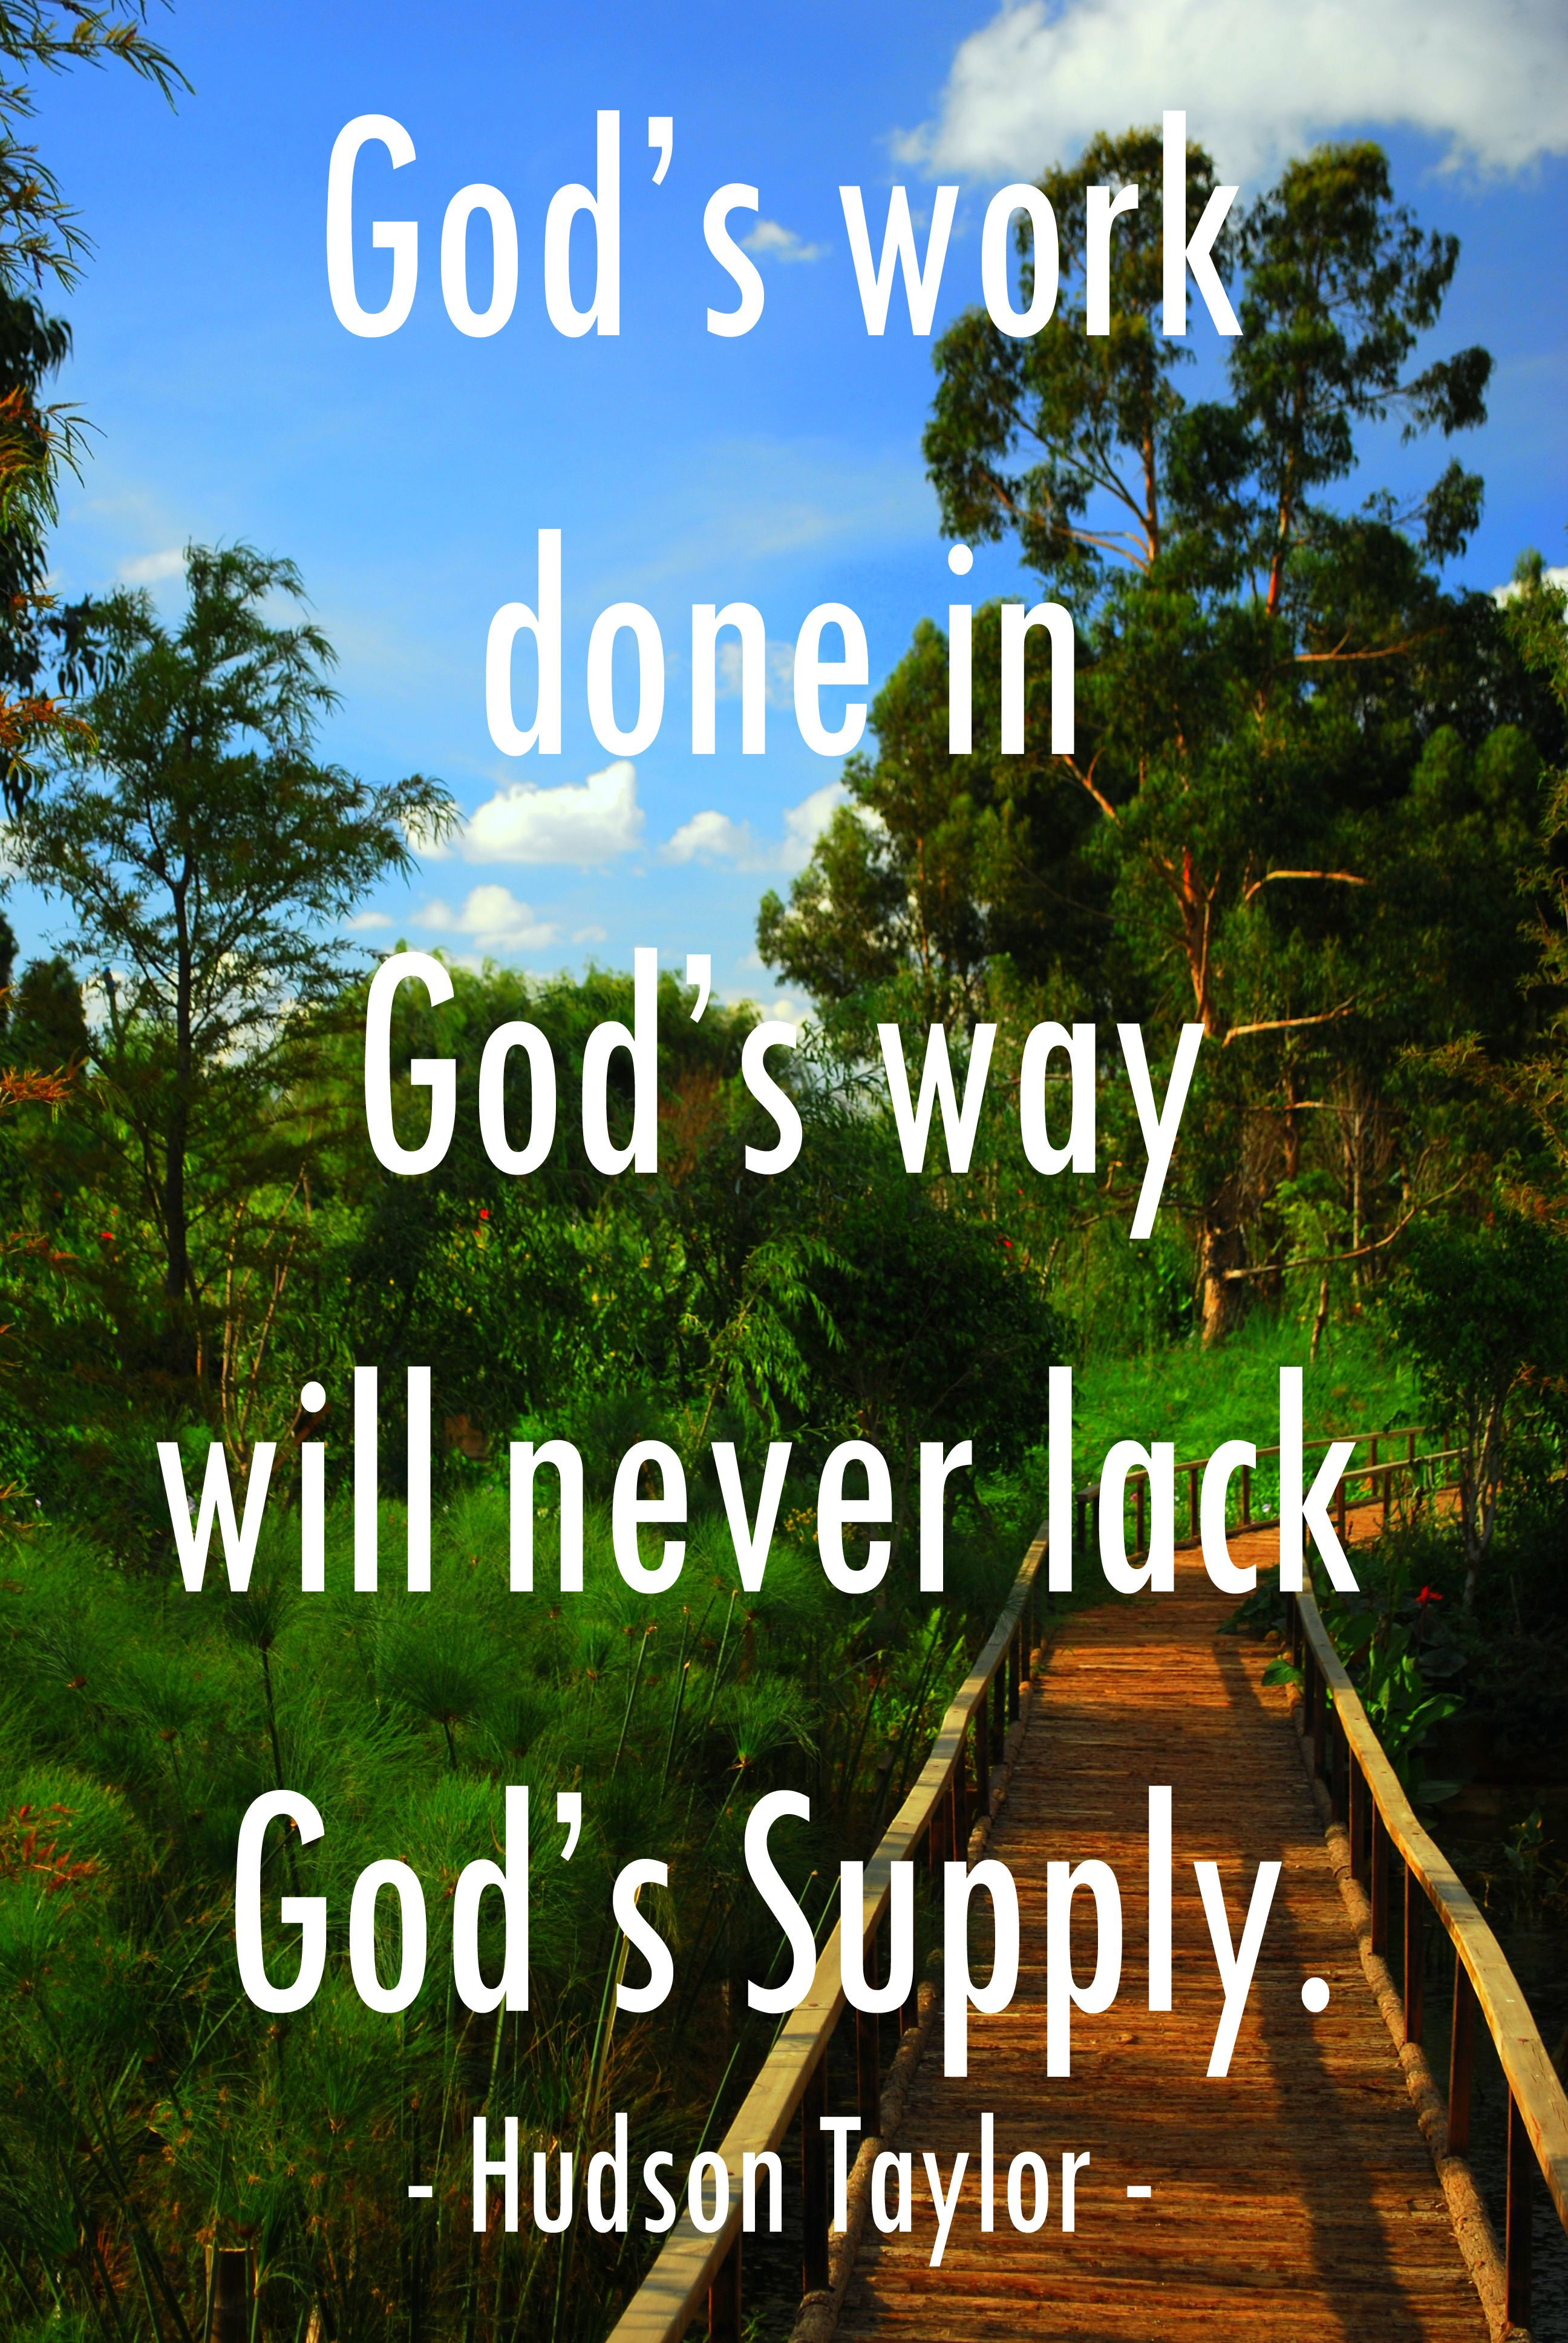 god's promises quotes christian